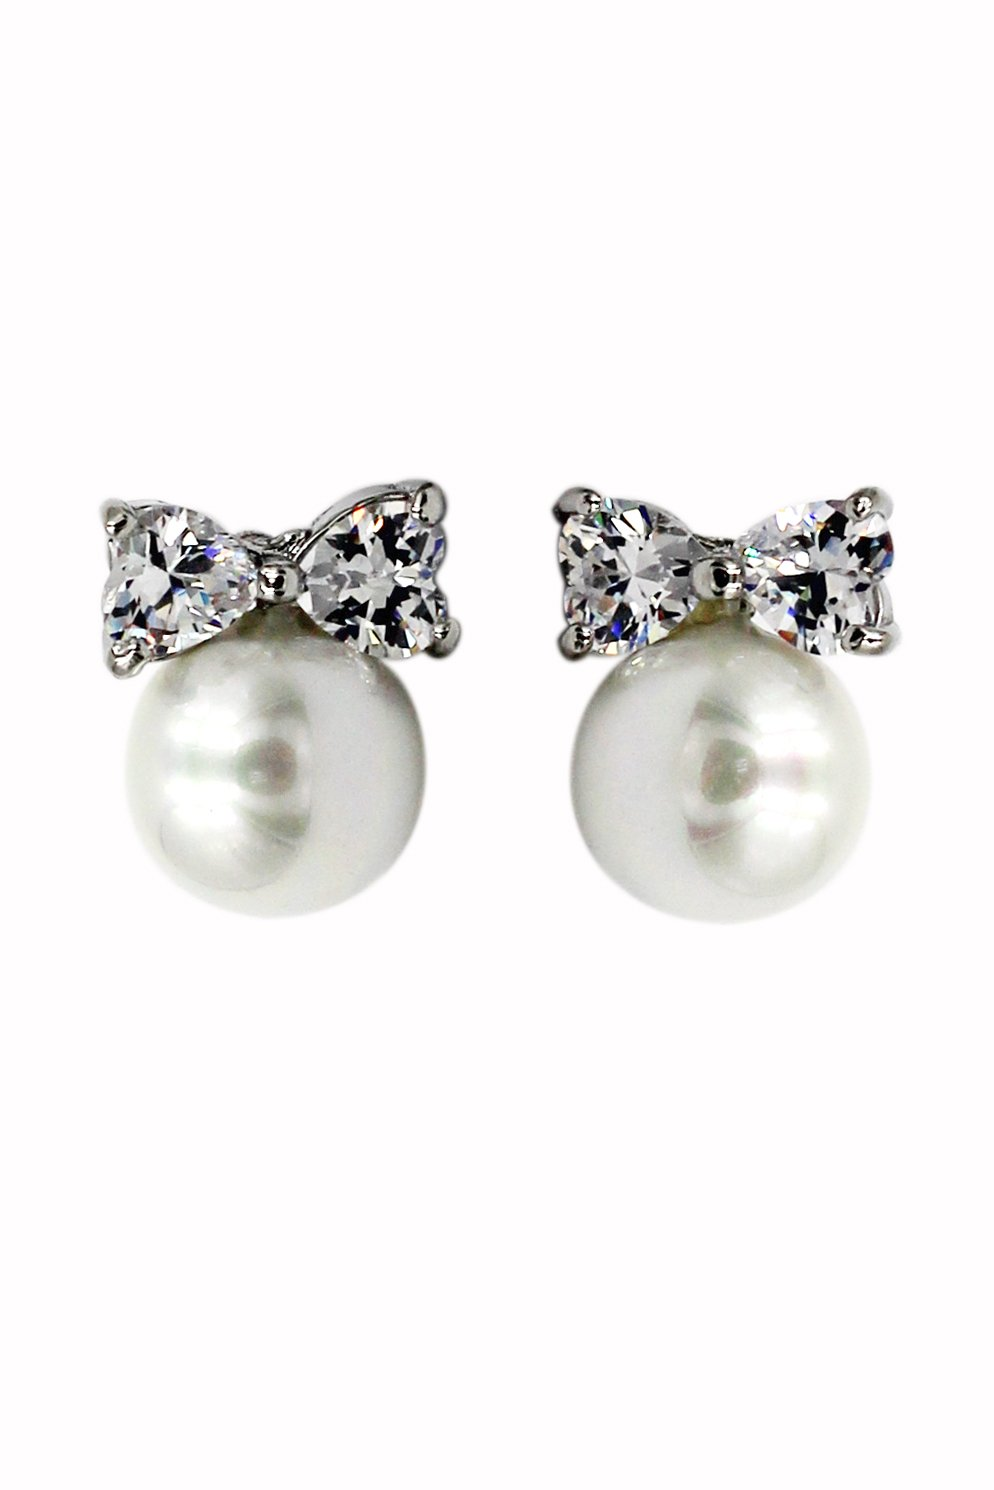 Lovely pearl and bow-knot crystal silver earrings